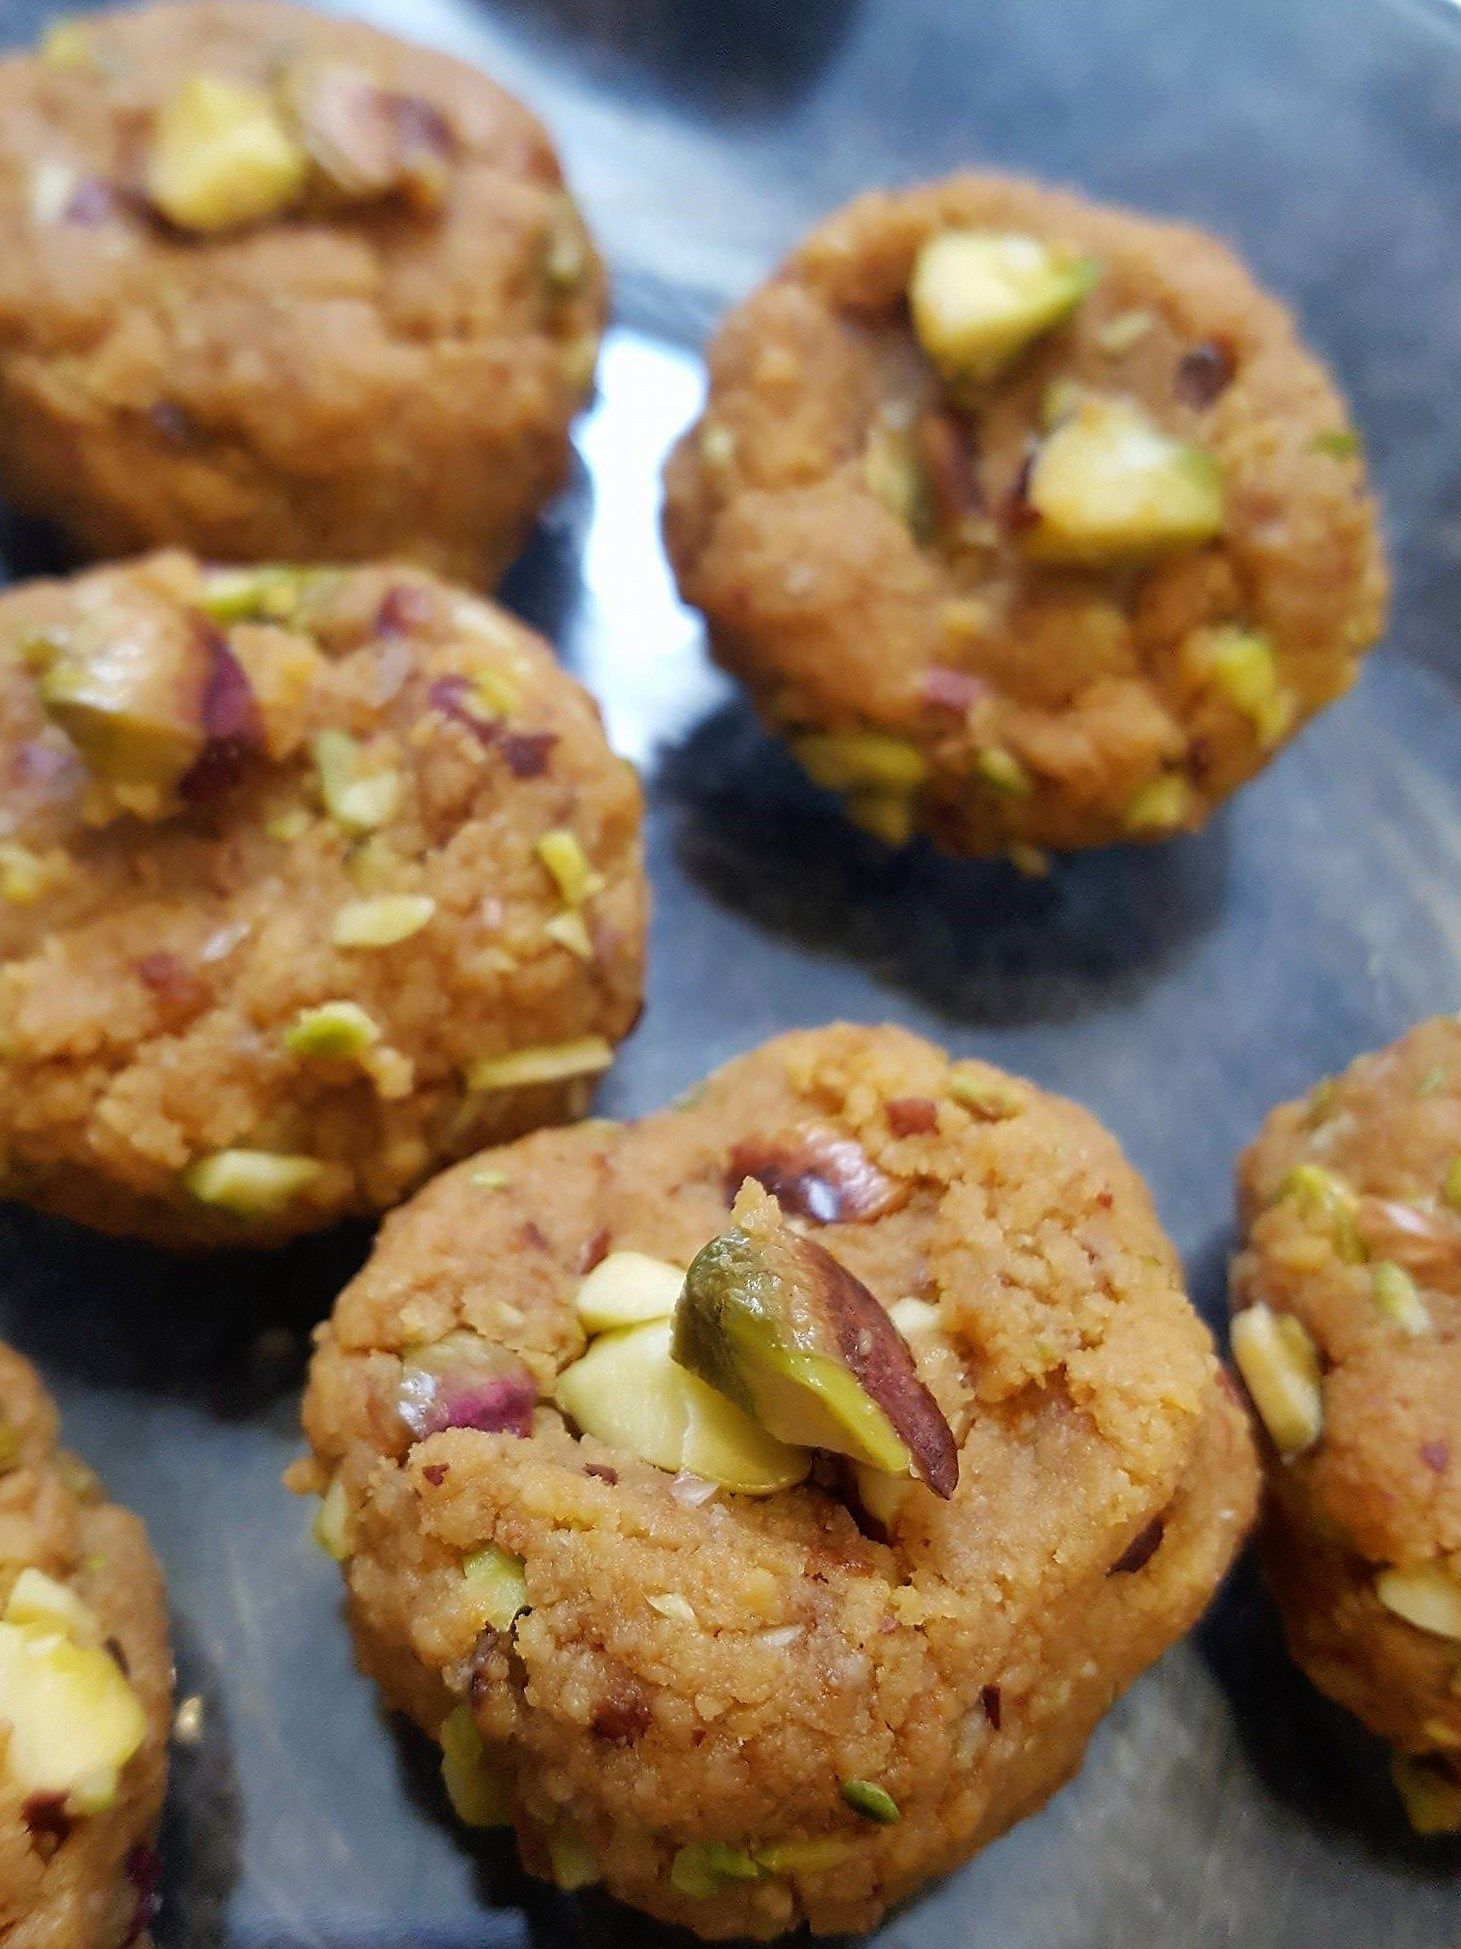 Rustic indian peda with roasted pistachios recipe diwali food rustic indian peda with roasted pistachios recipe diwali food indian desserts and indian sweets forumfinder Gallery